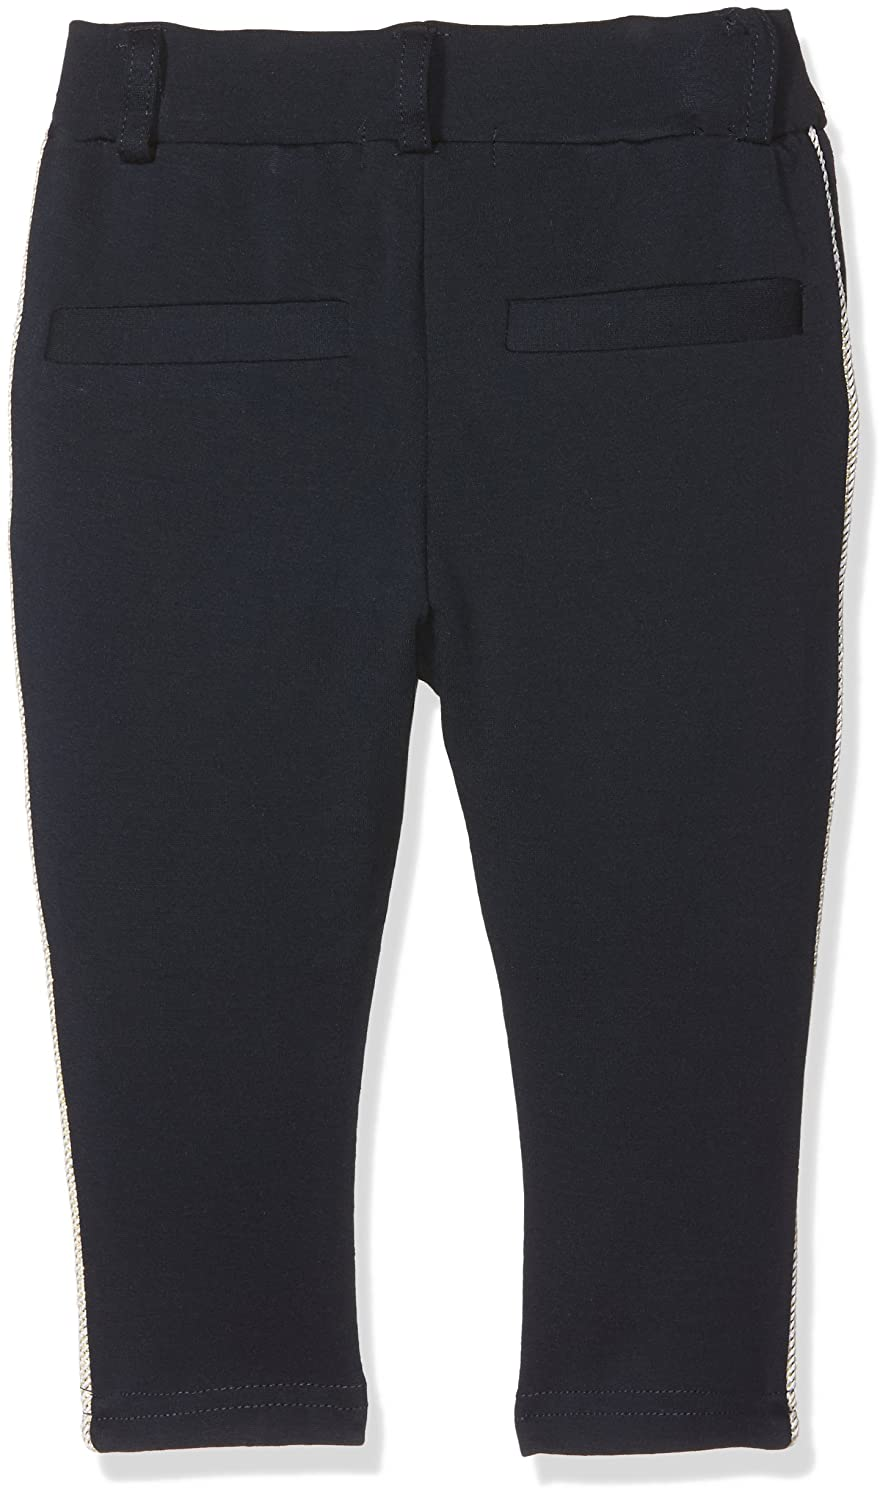 NAME IT Baby-M/ädchen Hose Nmfgaida Pant